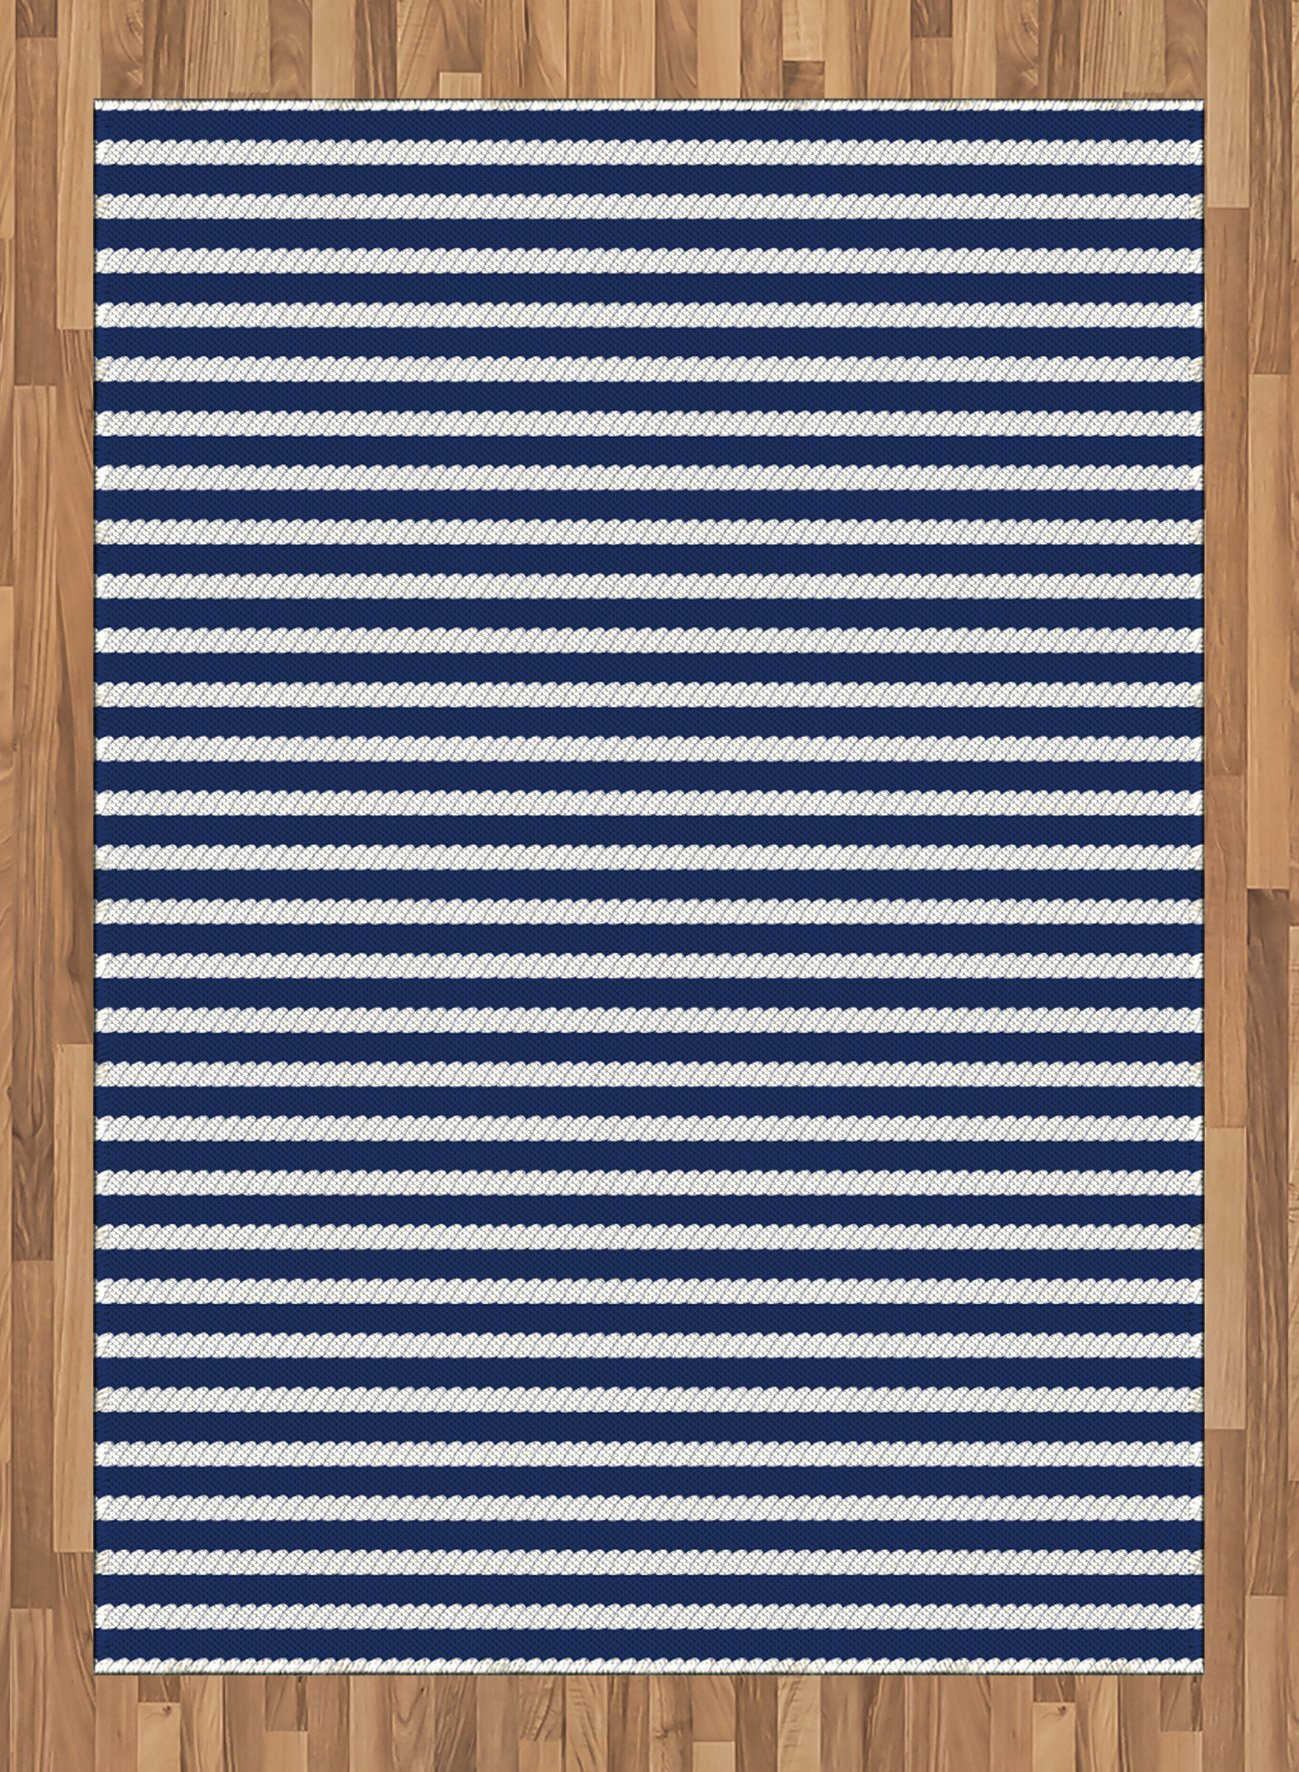 Navy Blue Area Rug by Ambesonne, Yacht Navy Marine Themed Rope Stripe Pattern on Dark Blue Background, Flat Woven Accent Rug for Living Room Bedroom Dining Room, 5.2 x 7.5 FT, Navy Blue and White